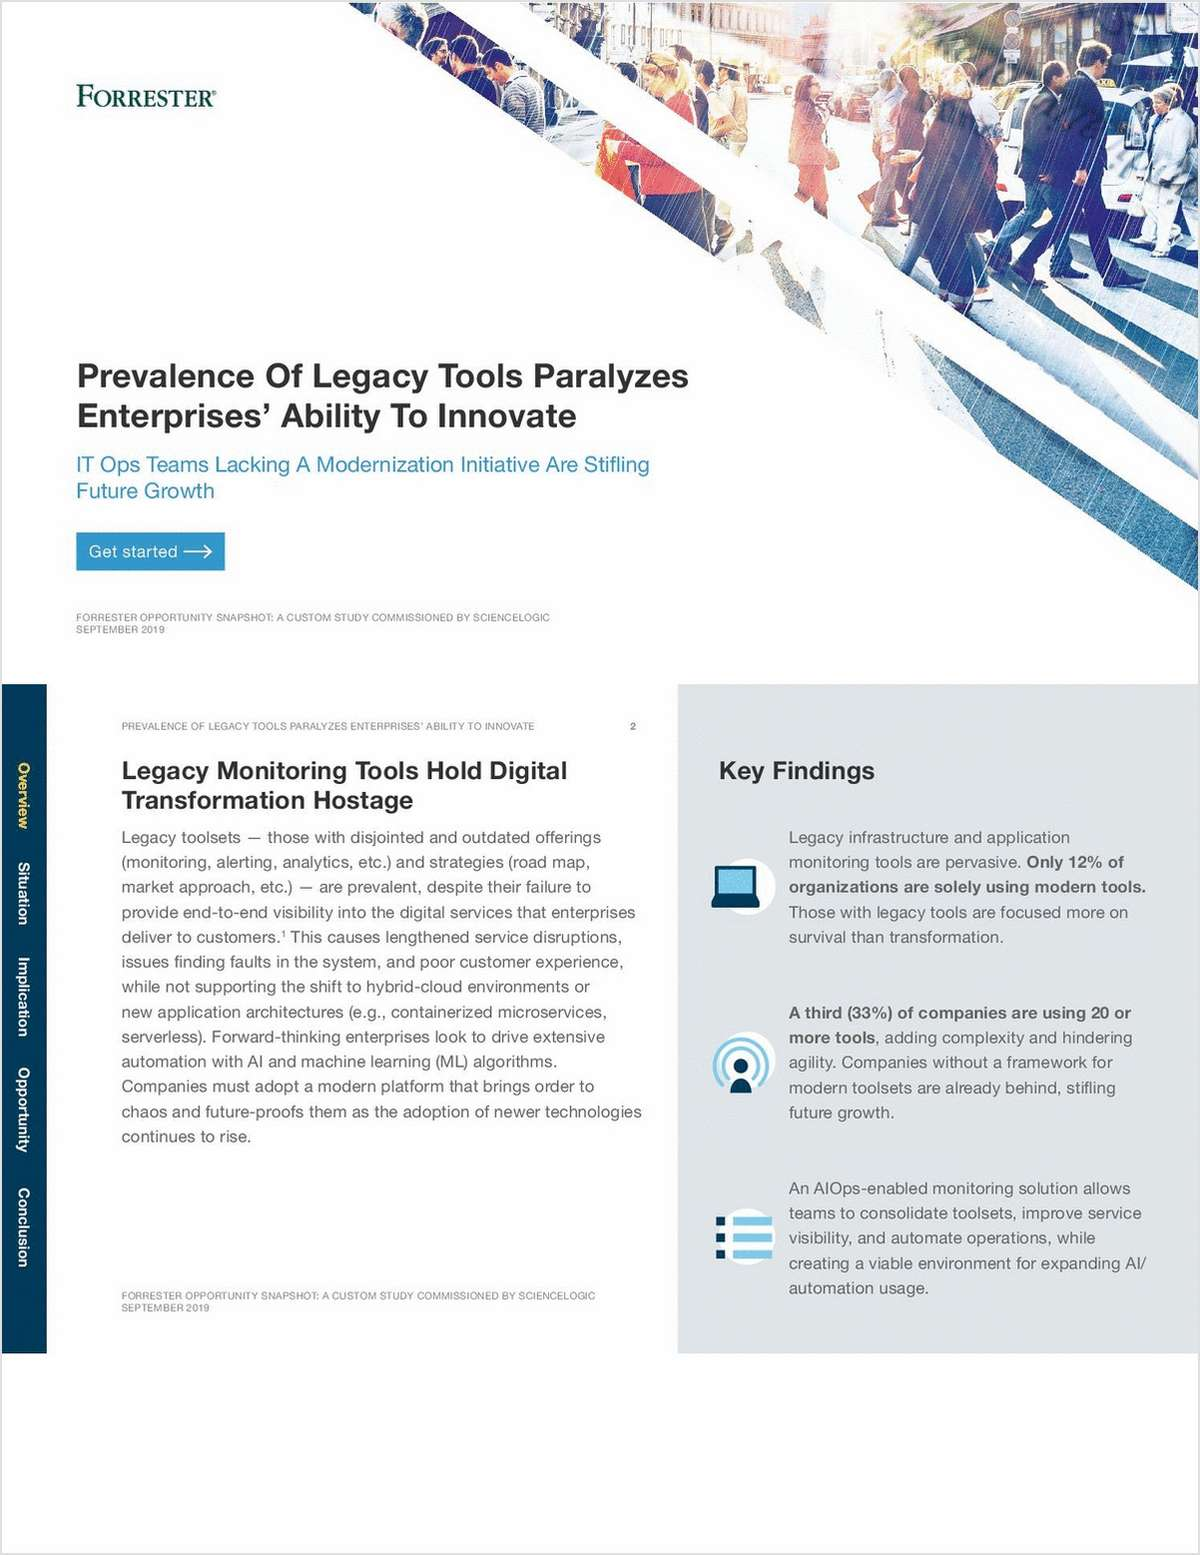 Forrester Report: Prevalance Of Legacy Tools Paralyzes Enterprises' Ability To Innovate